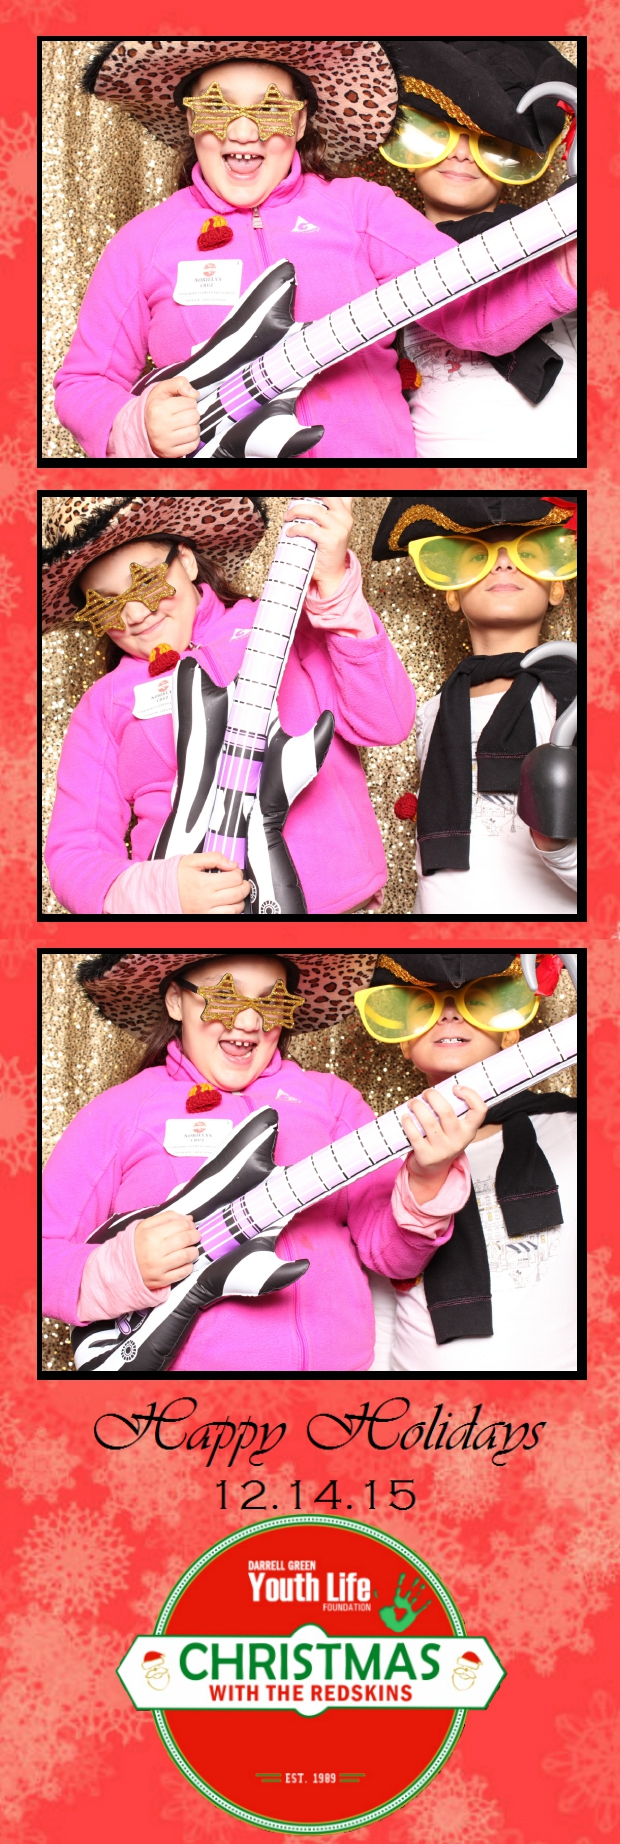 Guest House Events Photo Booth DGYLF Strips (6).jpg